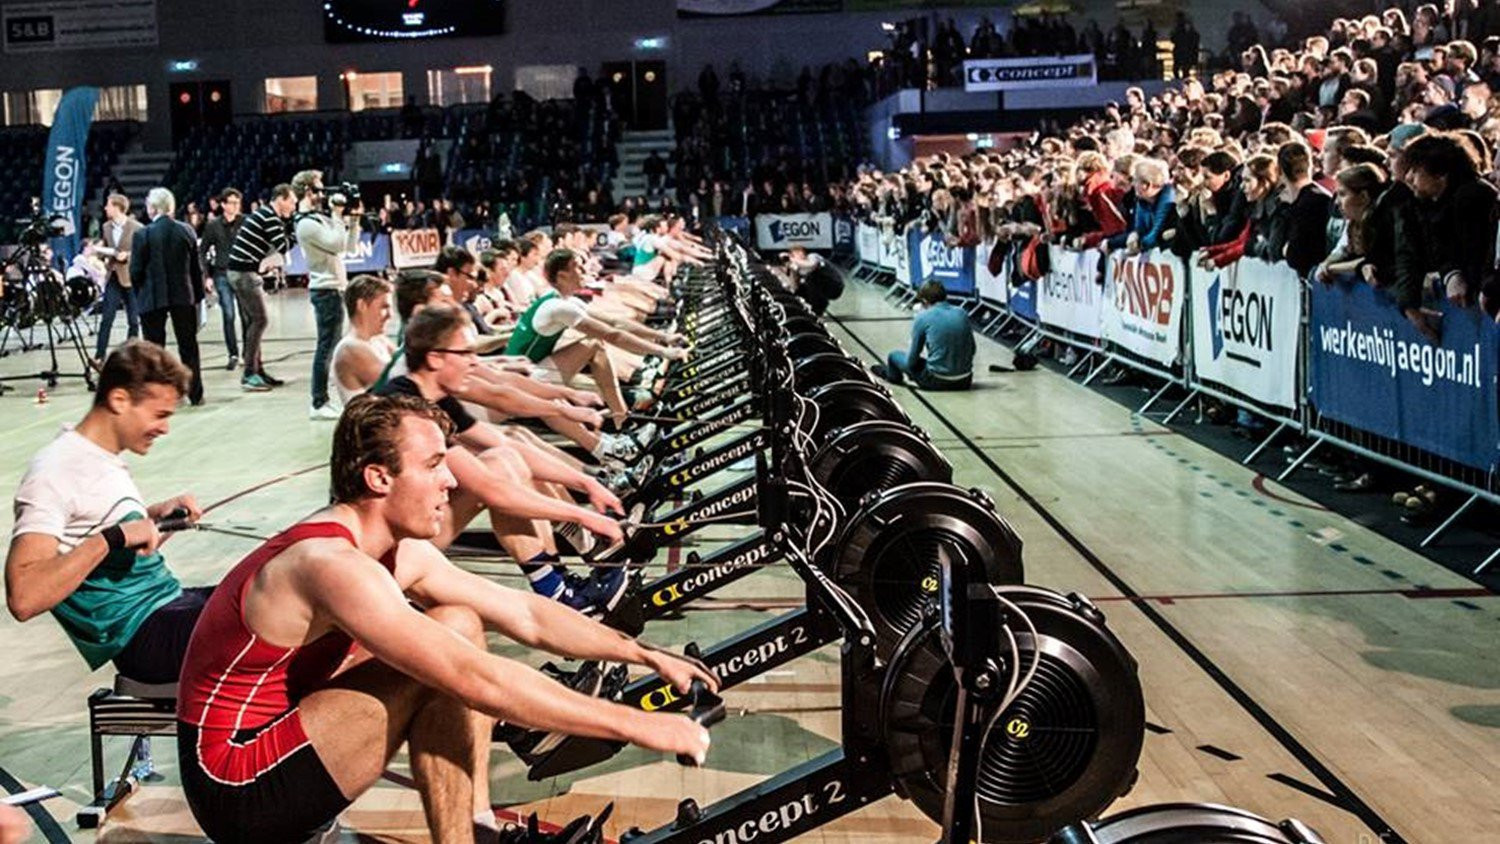 The doping violation occurred at the 2020 World Rowing Indoor Championships in Paris ©World Rowing